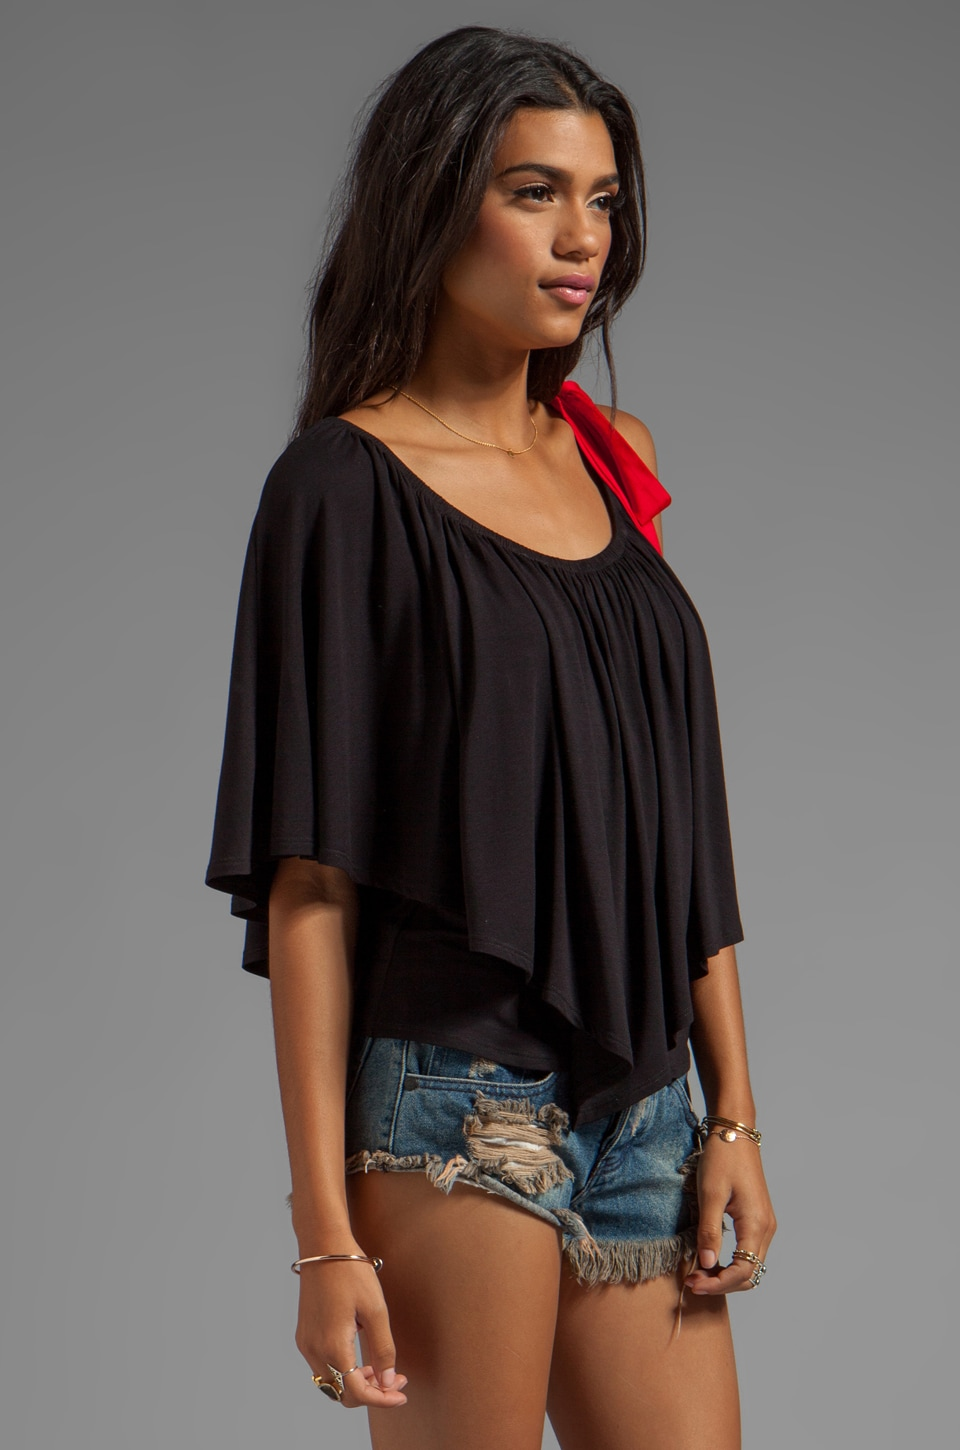 James & Joy Gameday II Tie Top in Black